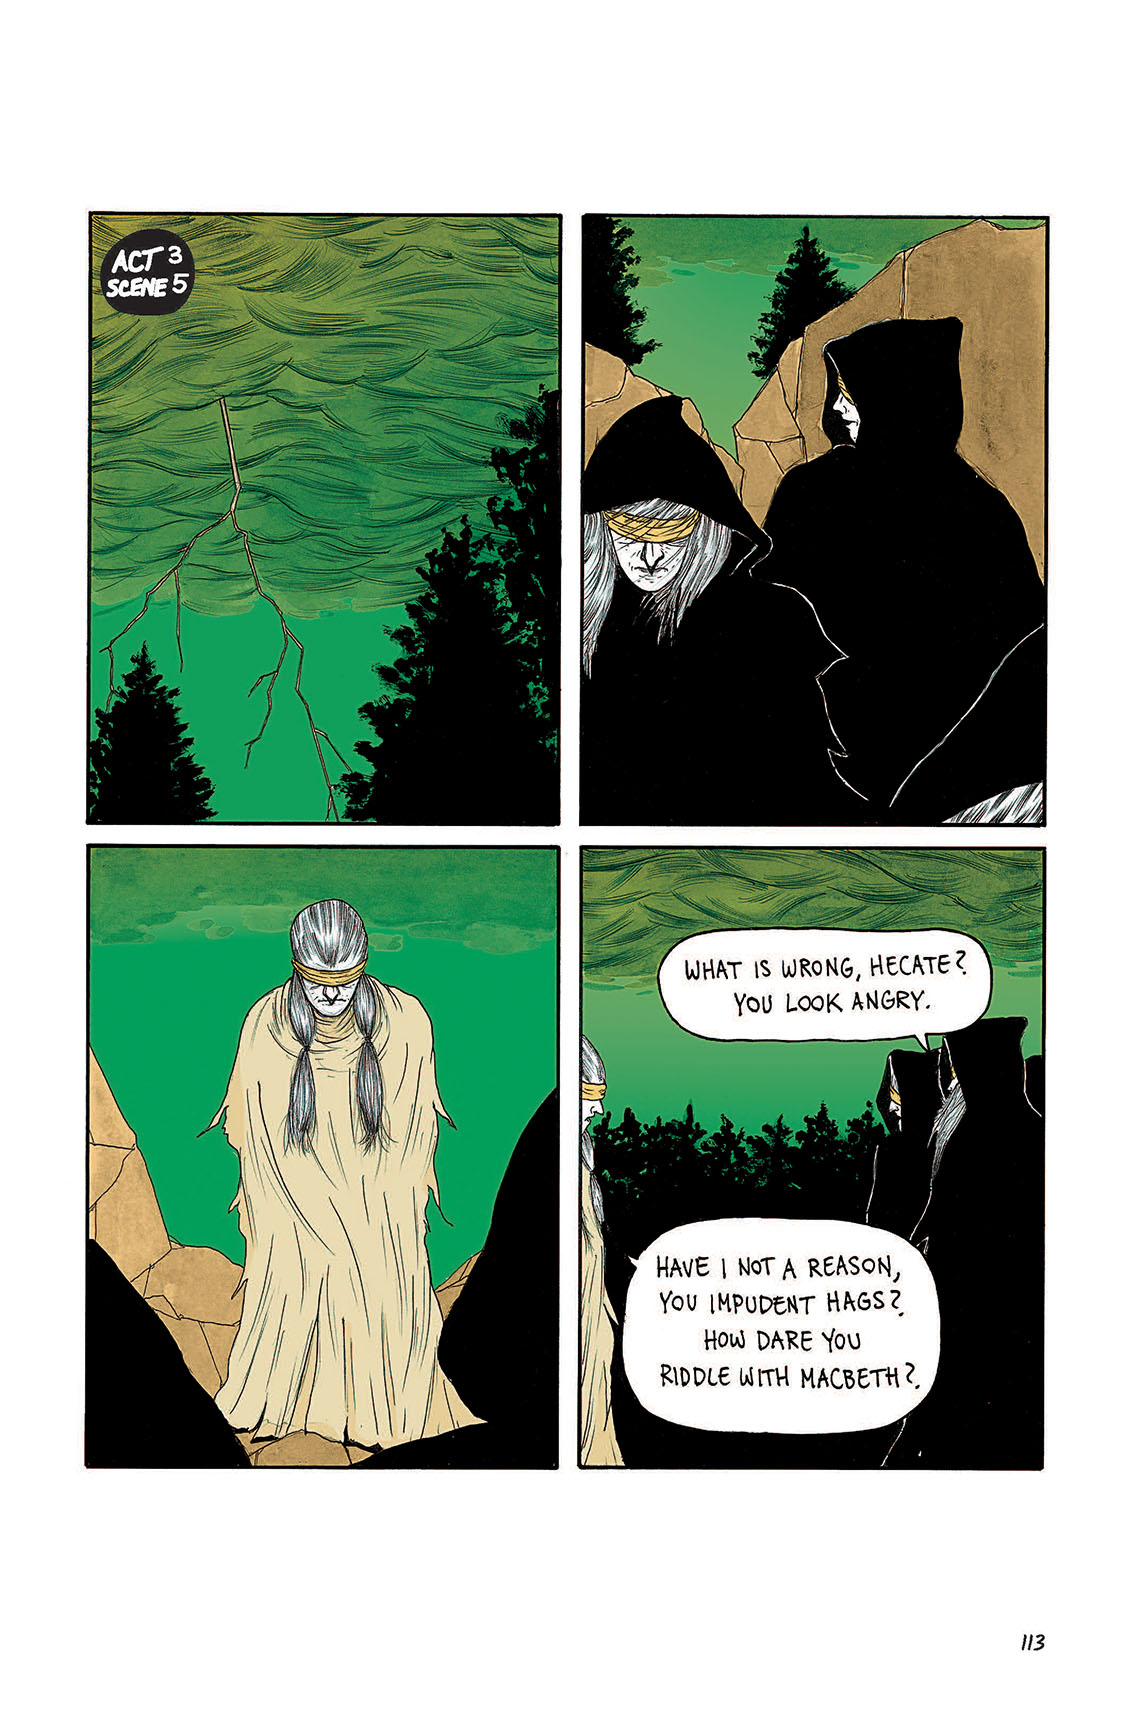 Macbeth Act 3 Scene 5 Page 113 Graphic Novel Sparknotes Sparknote 4 6